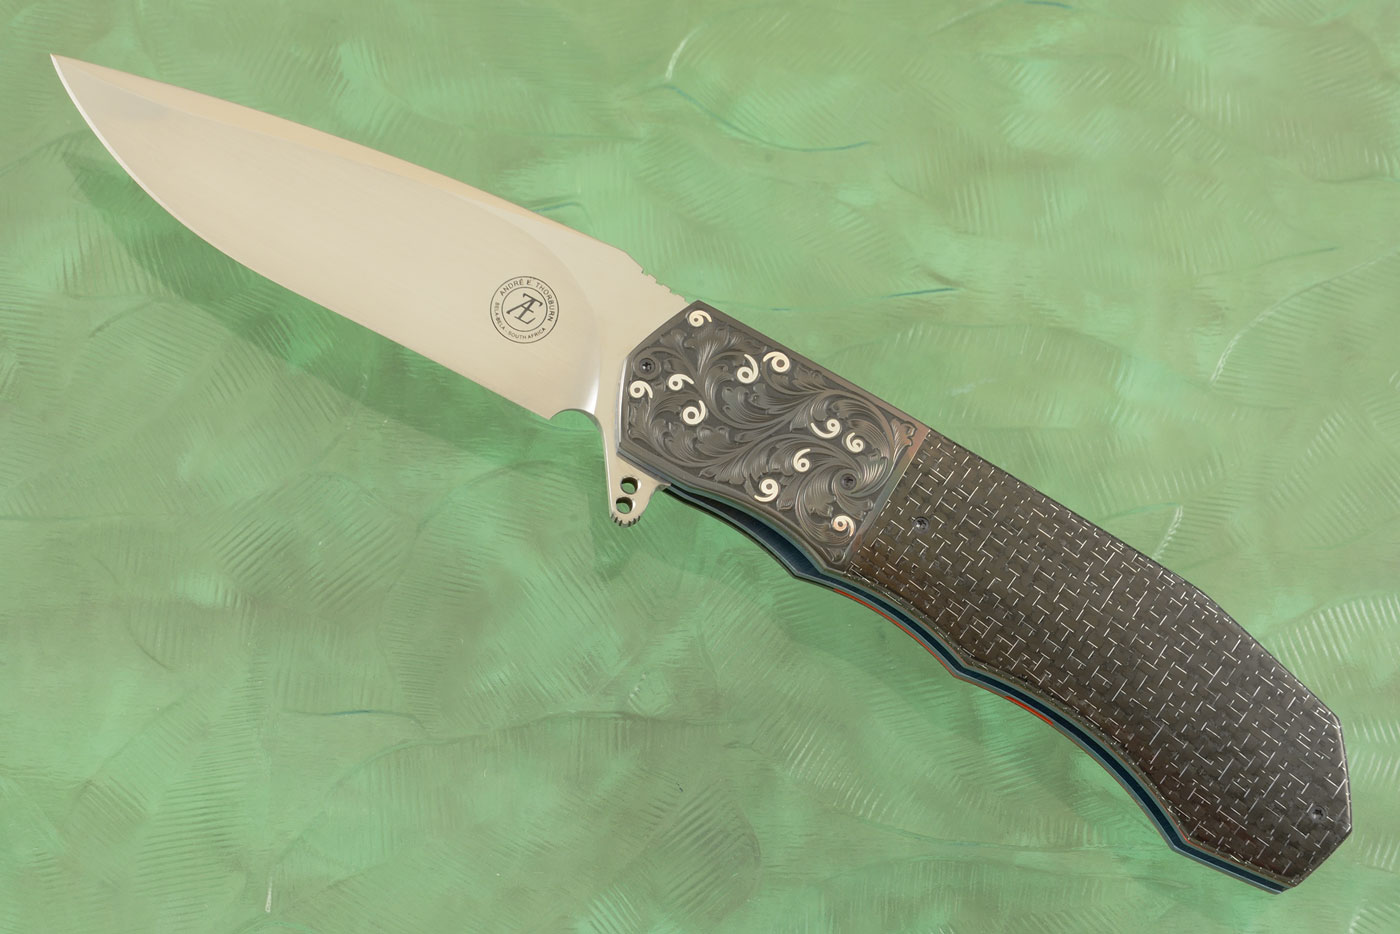 L44 Flipper - Silver Strike Carbon Fiber with Engraved Zirconium and Inlaid Silver (Ceramic IKBS) - M390